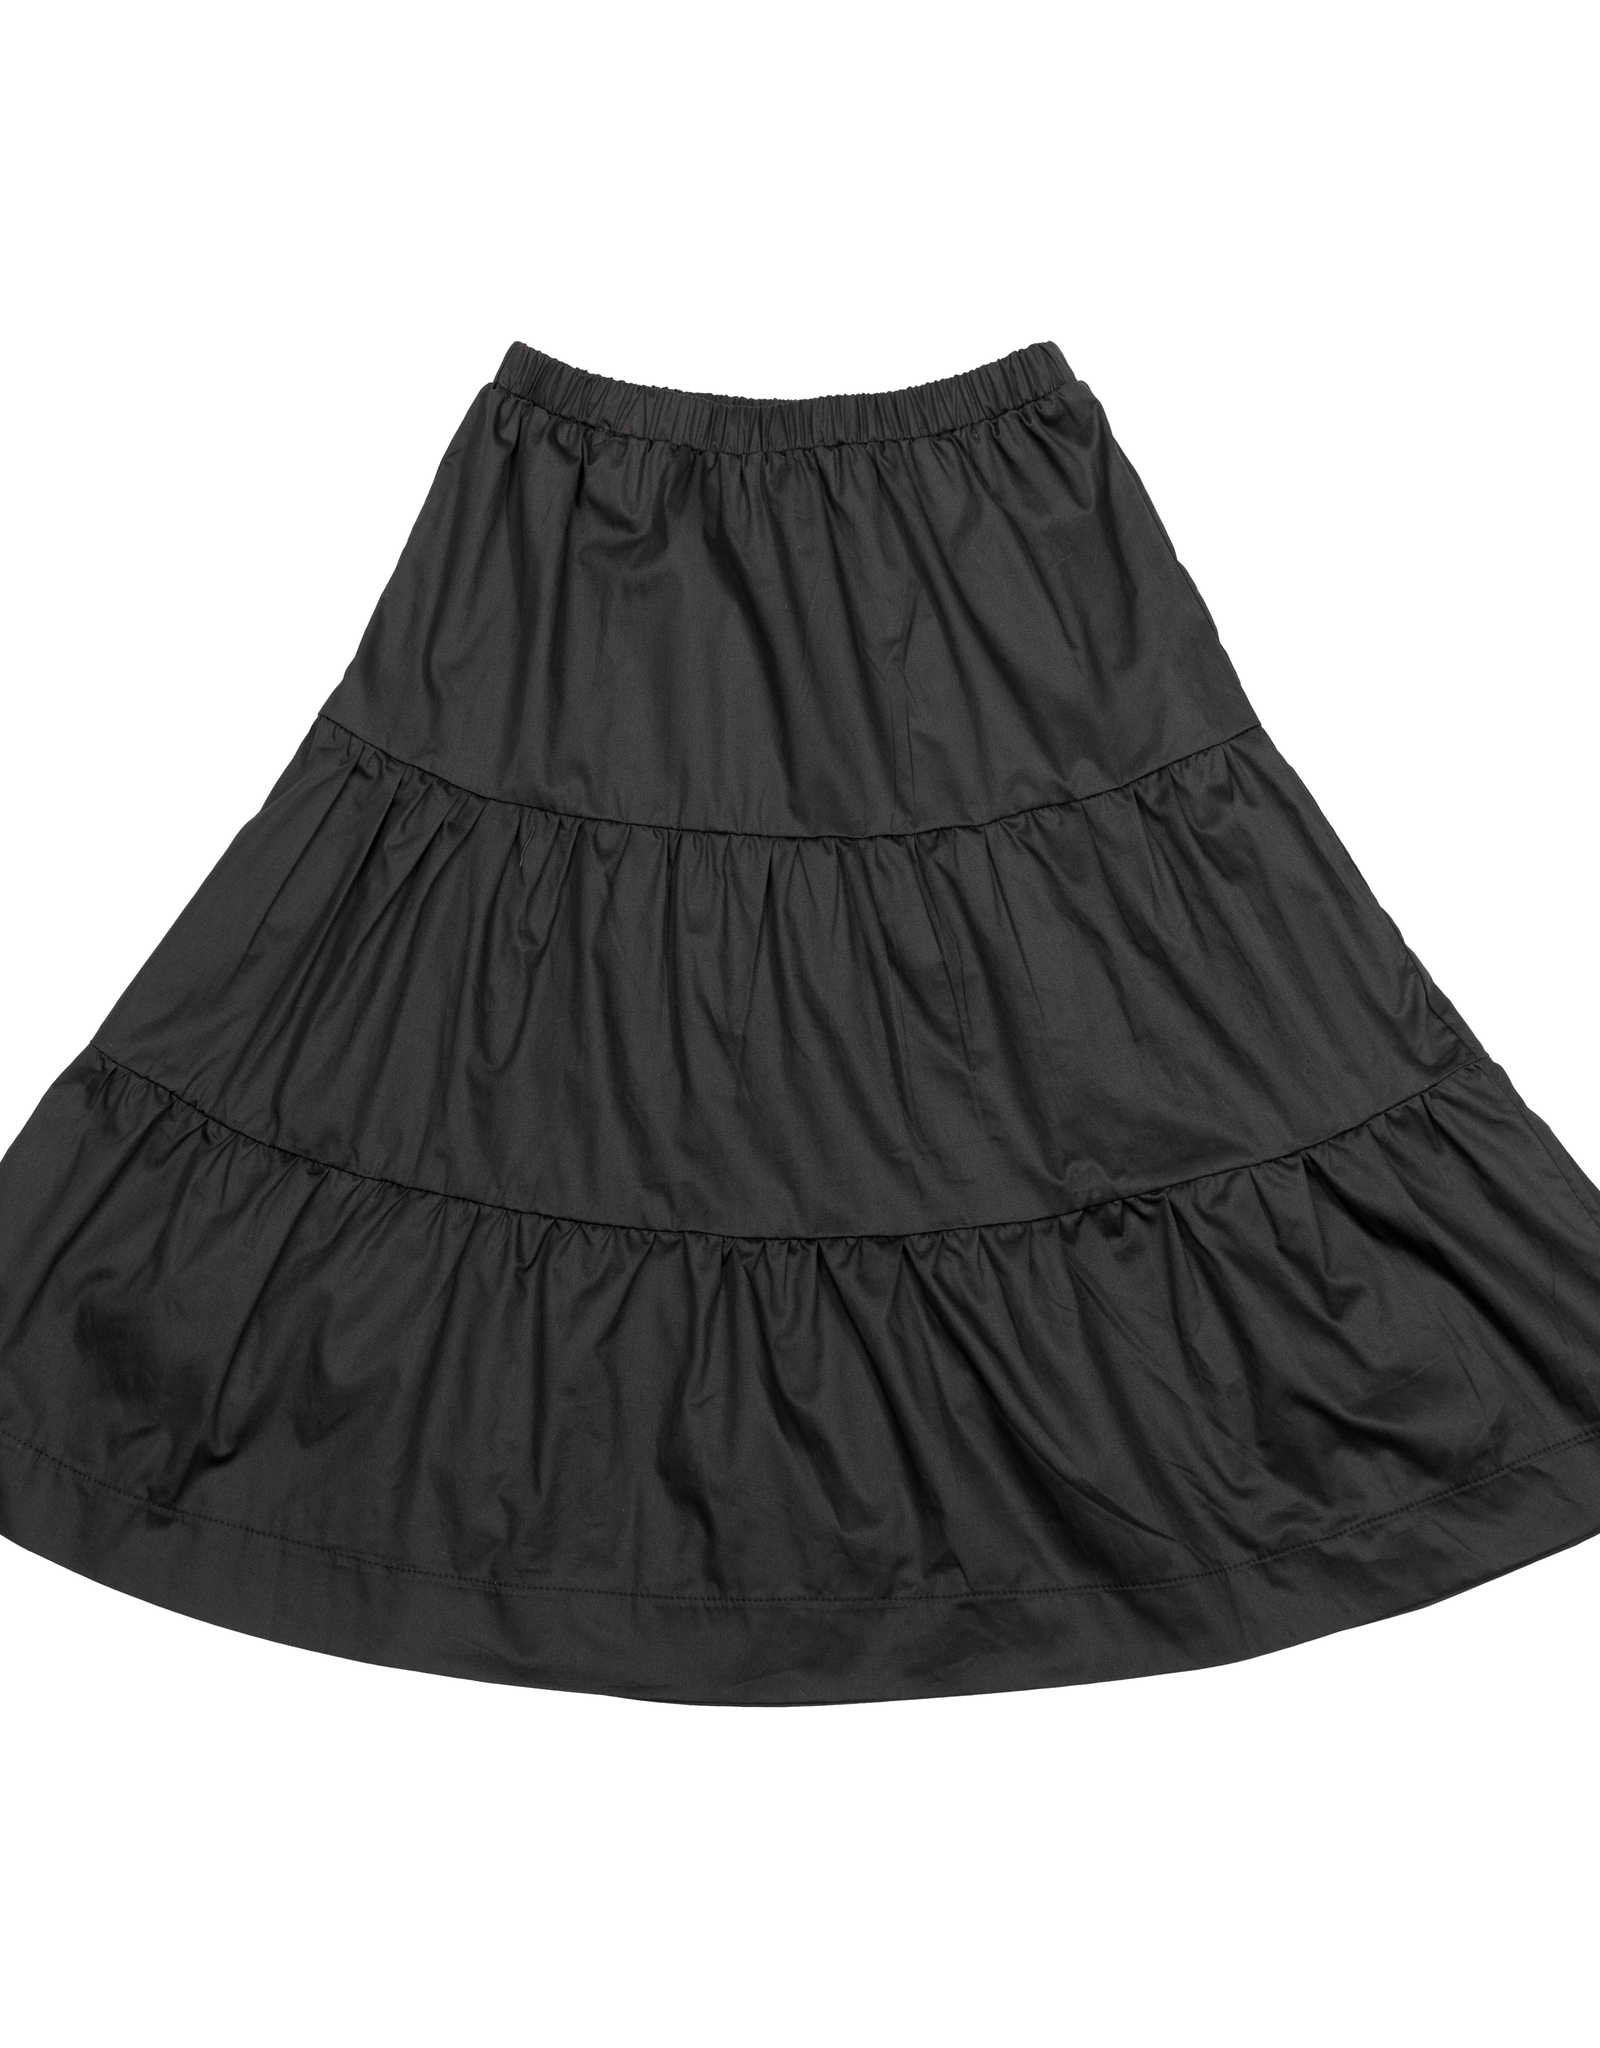 UNCLEAR Unclear TEEN Tiered Belvedere Skirt